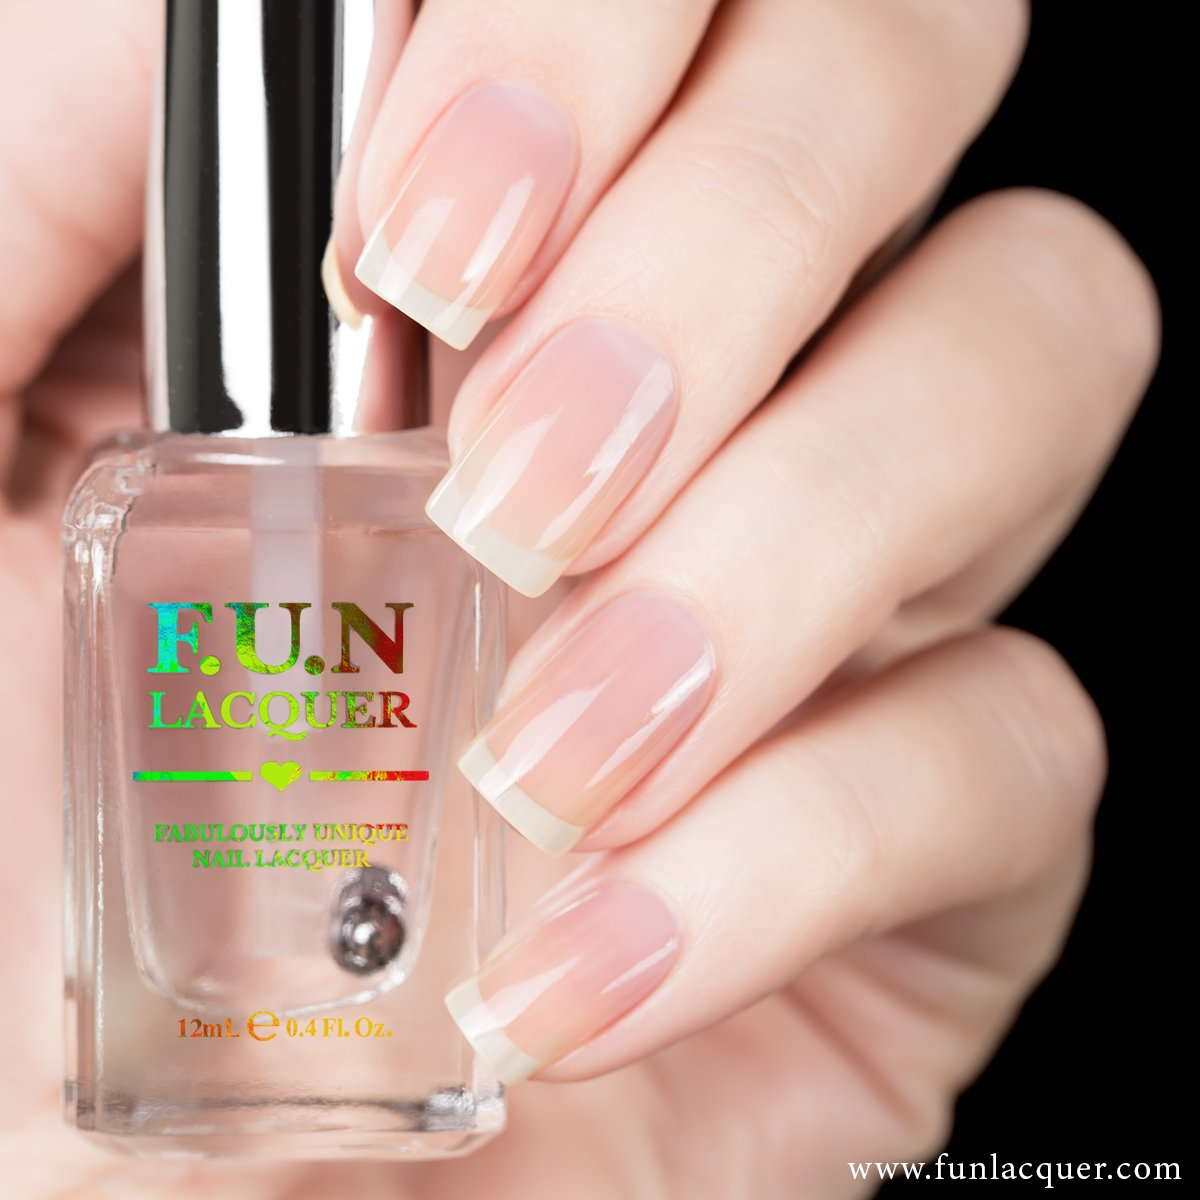 F.U.N Lacquer - Peel It Off!